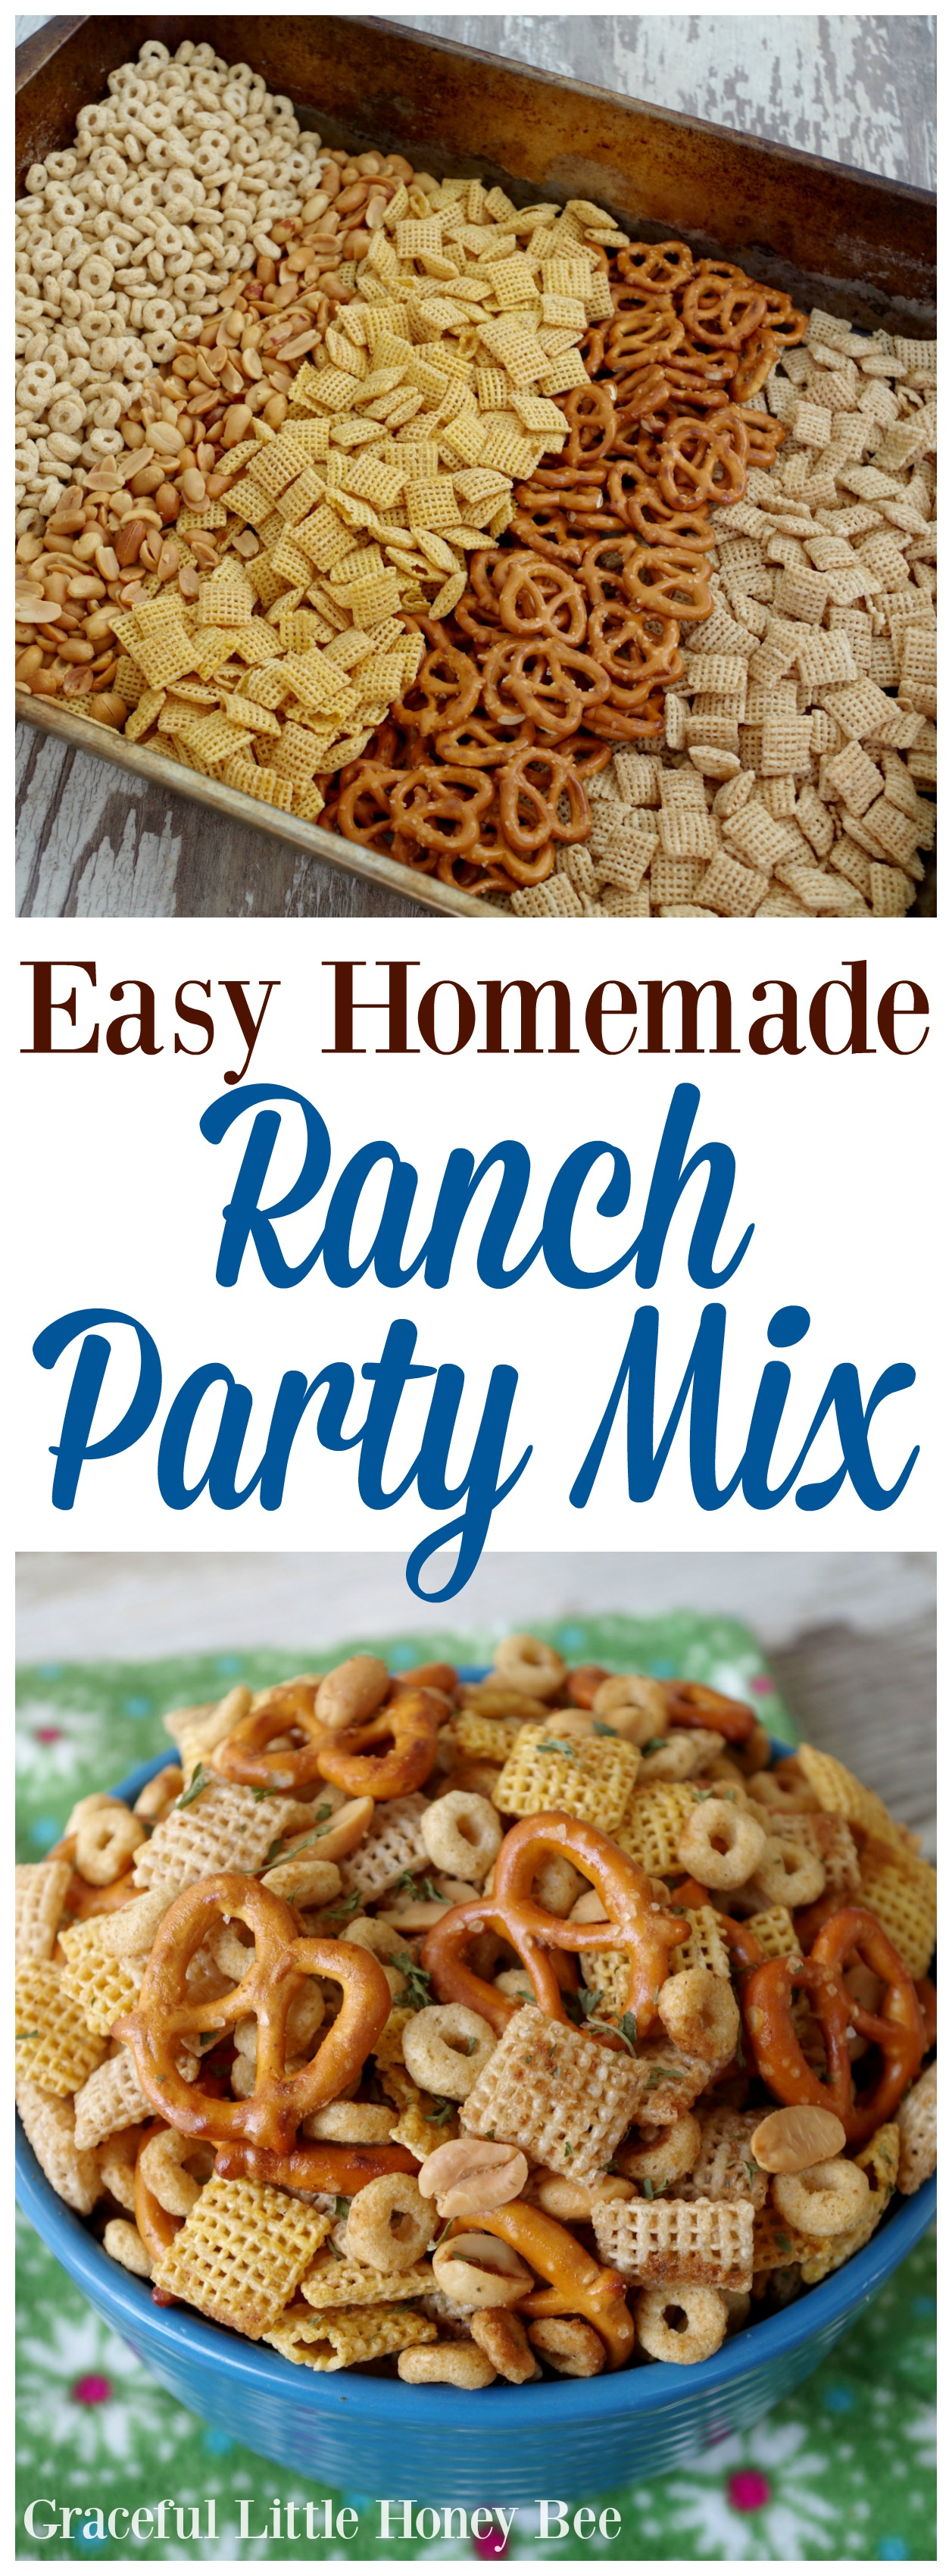 Easy homemade ranch party mix graceful little honey bee for Easy ranch